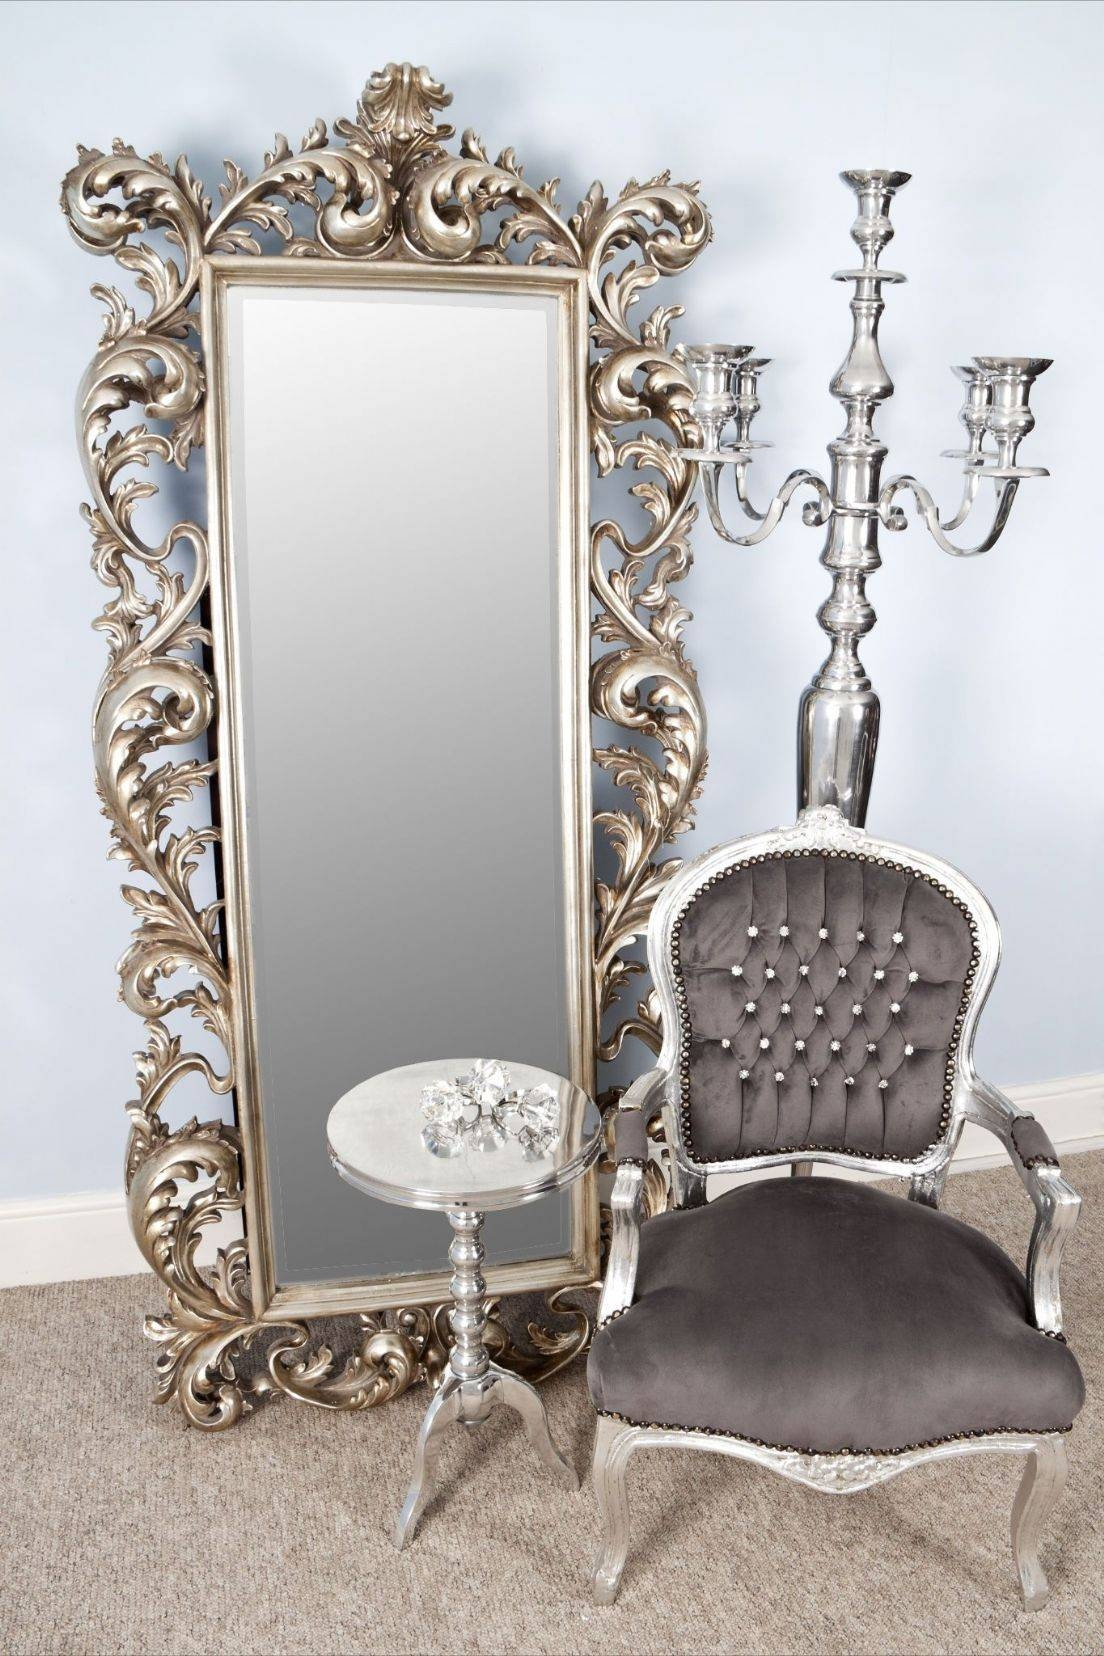 Big Silver Framed Mirror | Vanity Decoration for Big Silver Mirrors (Image 7 of 25)